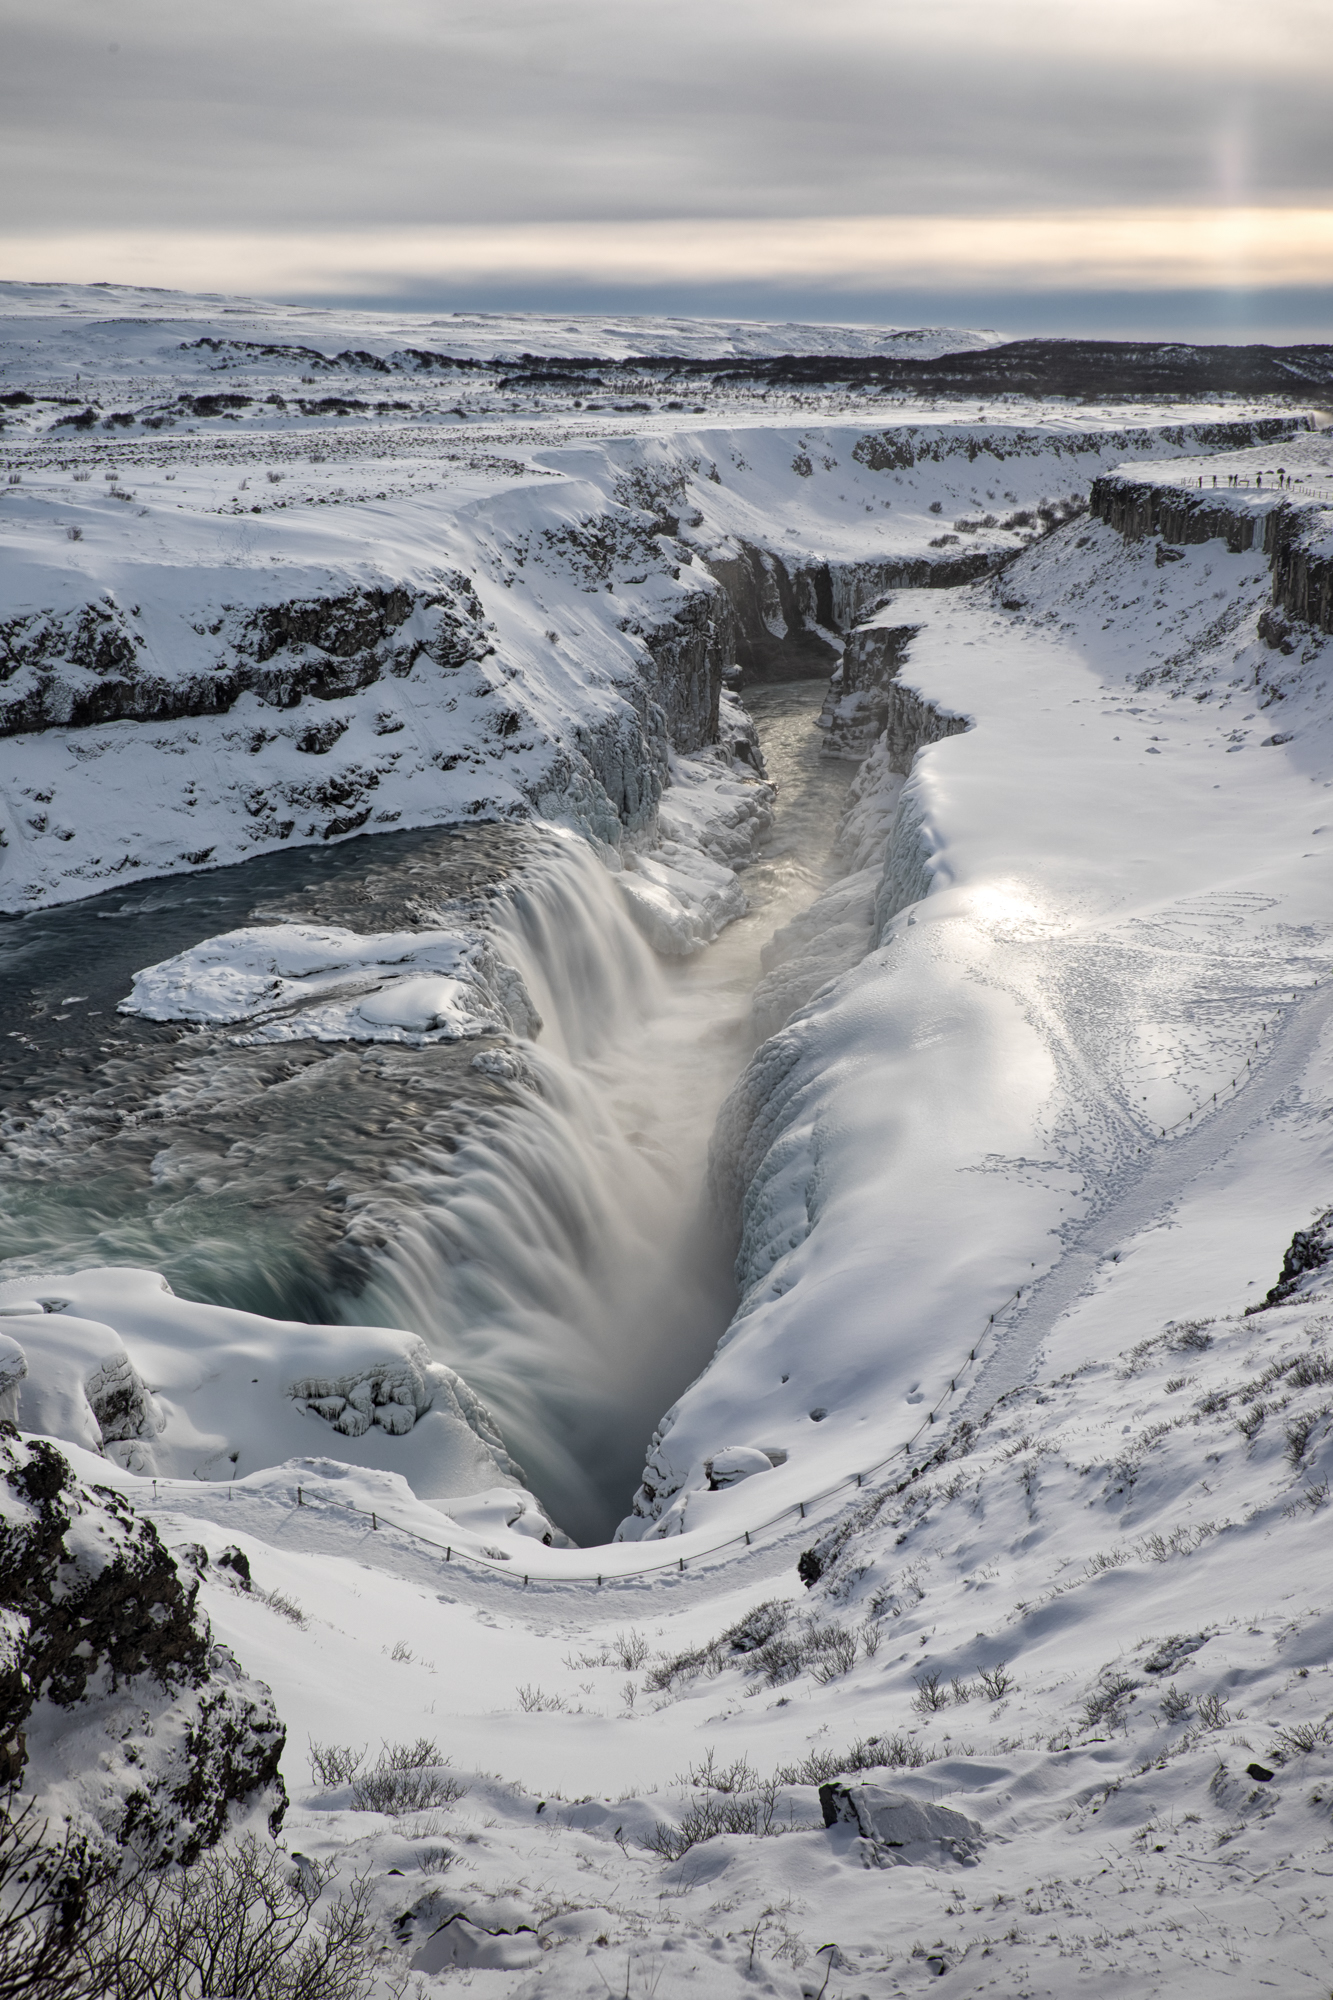 Gulfoss Iceland Northern Ireland Landscape Photographer-12